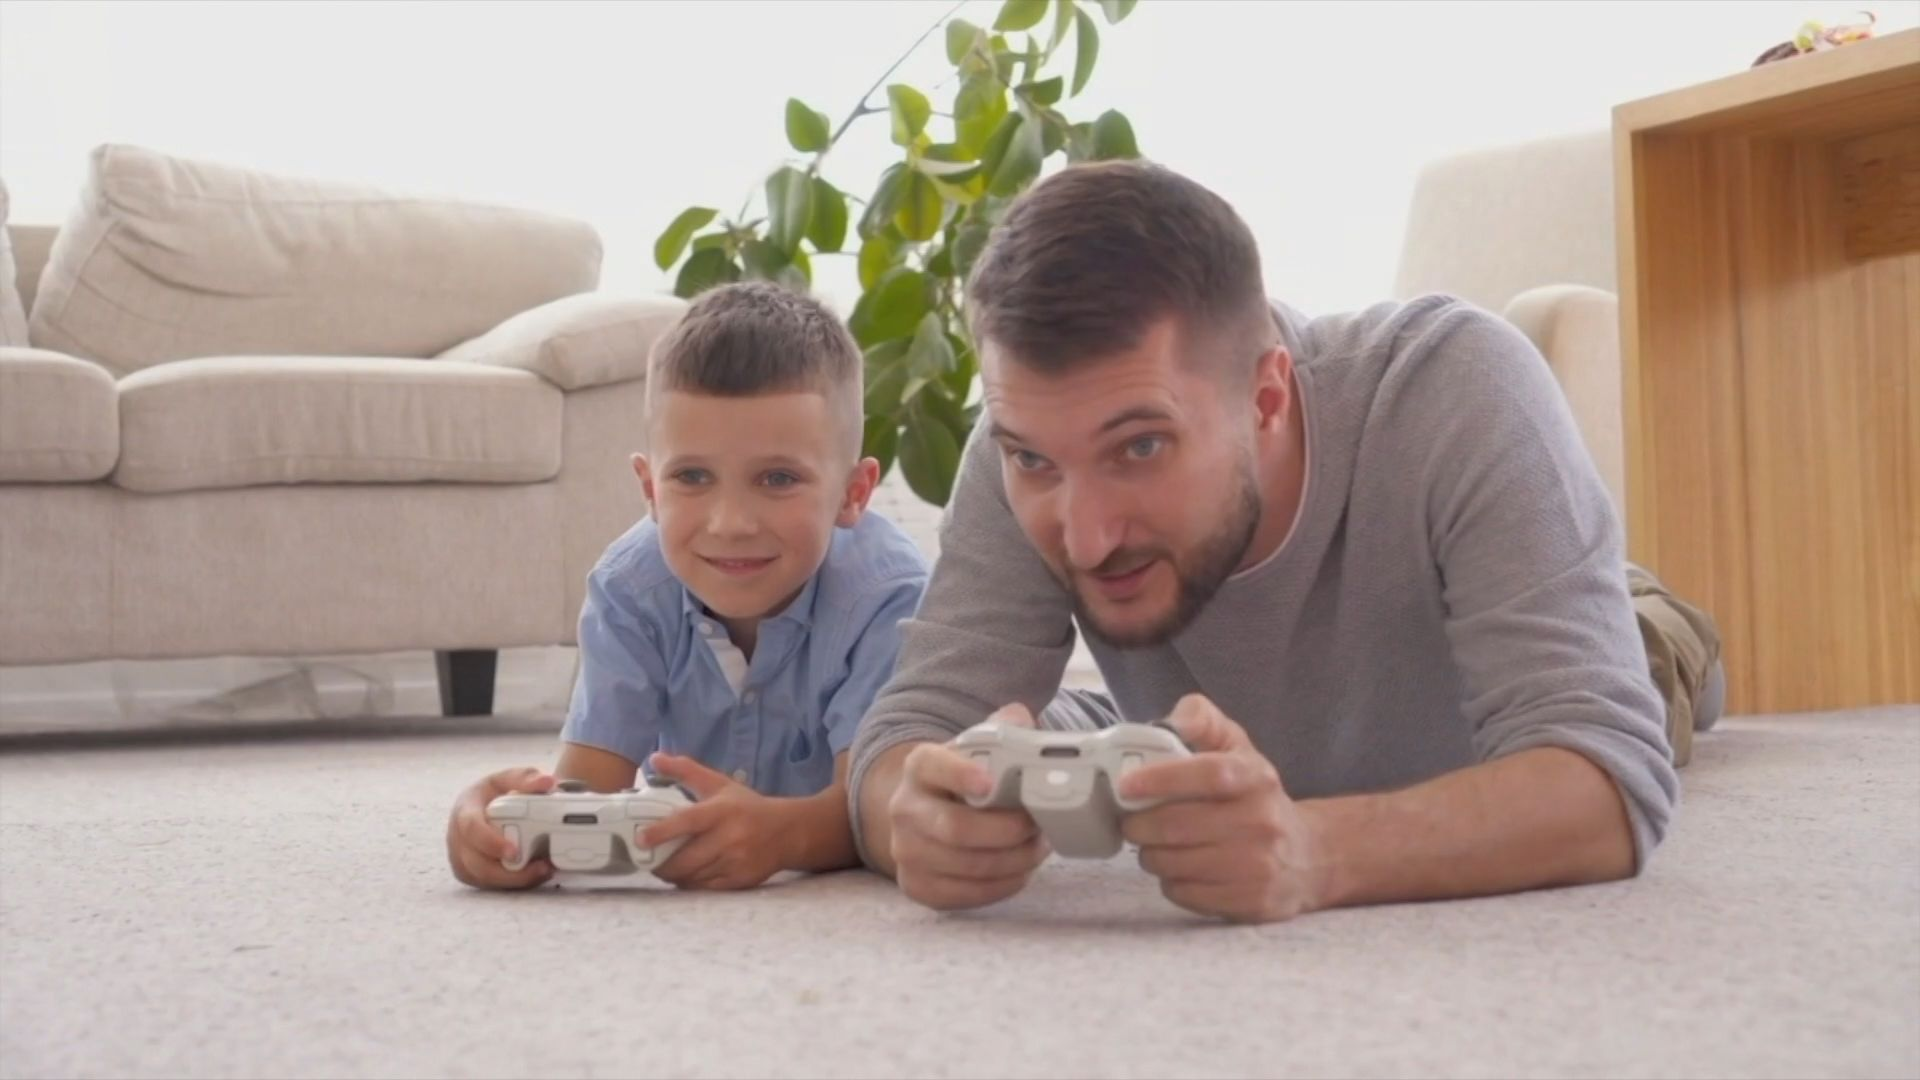 koaa.com - Patrick Nelson - Video game industry thriving despite pandemic challenges